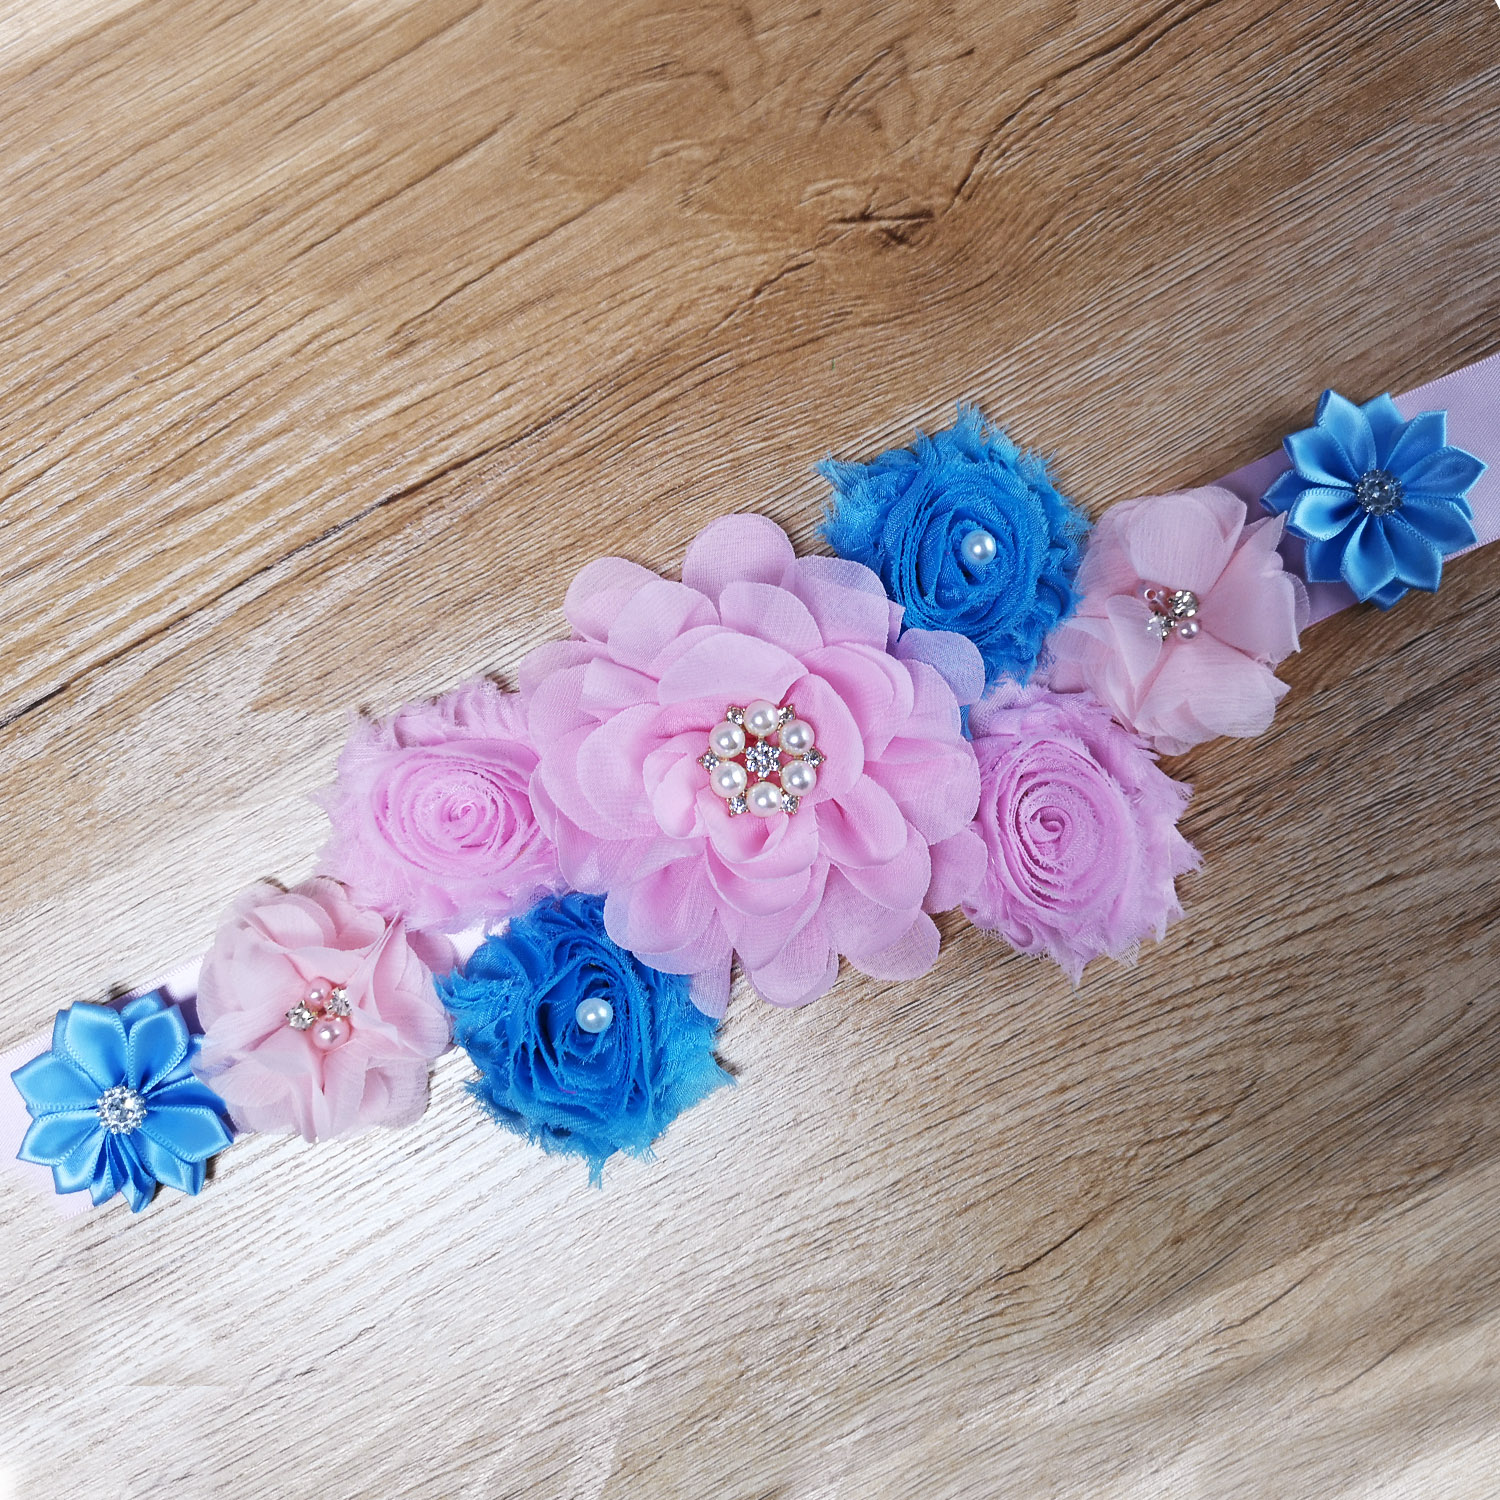 Flower Sash Pink Blue Maternity Sash Pregnancy Belly Belt Baby Shower Party Photo Prop Baby Gift Floral Belt Flower Girl Sash